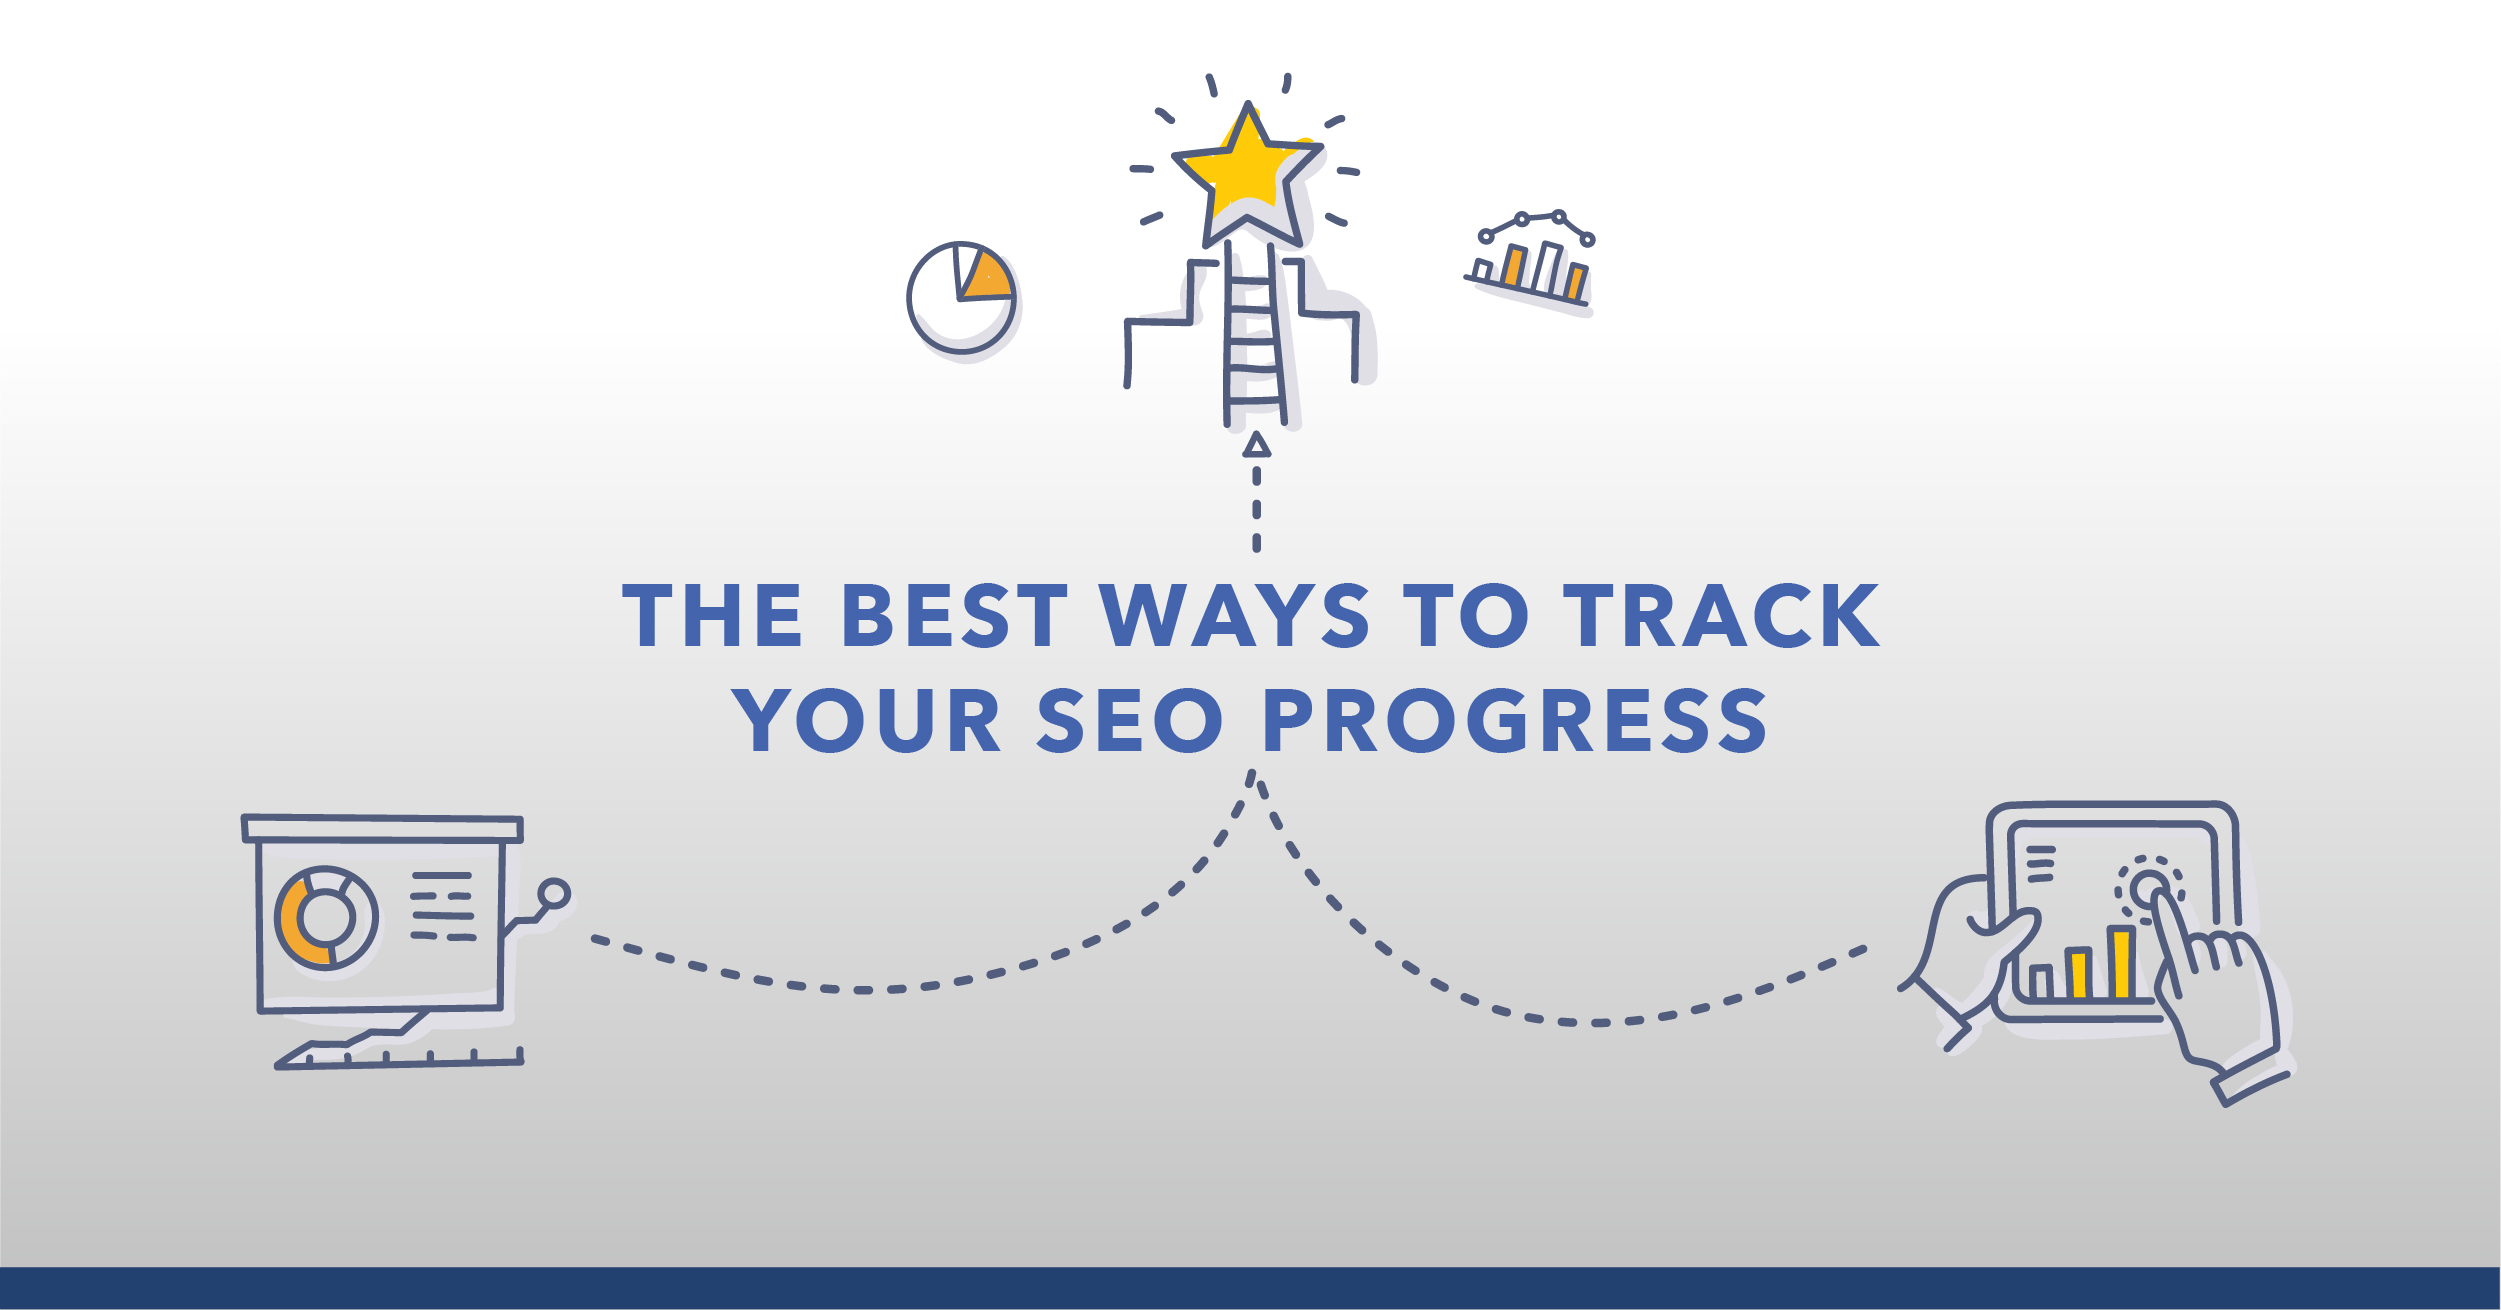 Are You Sure Your SEO Is Working? Here's How to Measure Its Progress.